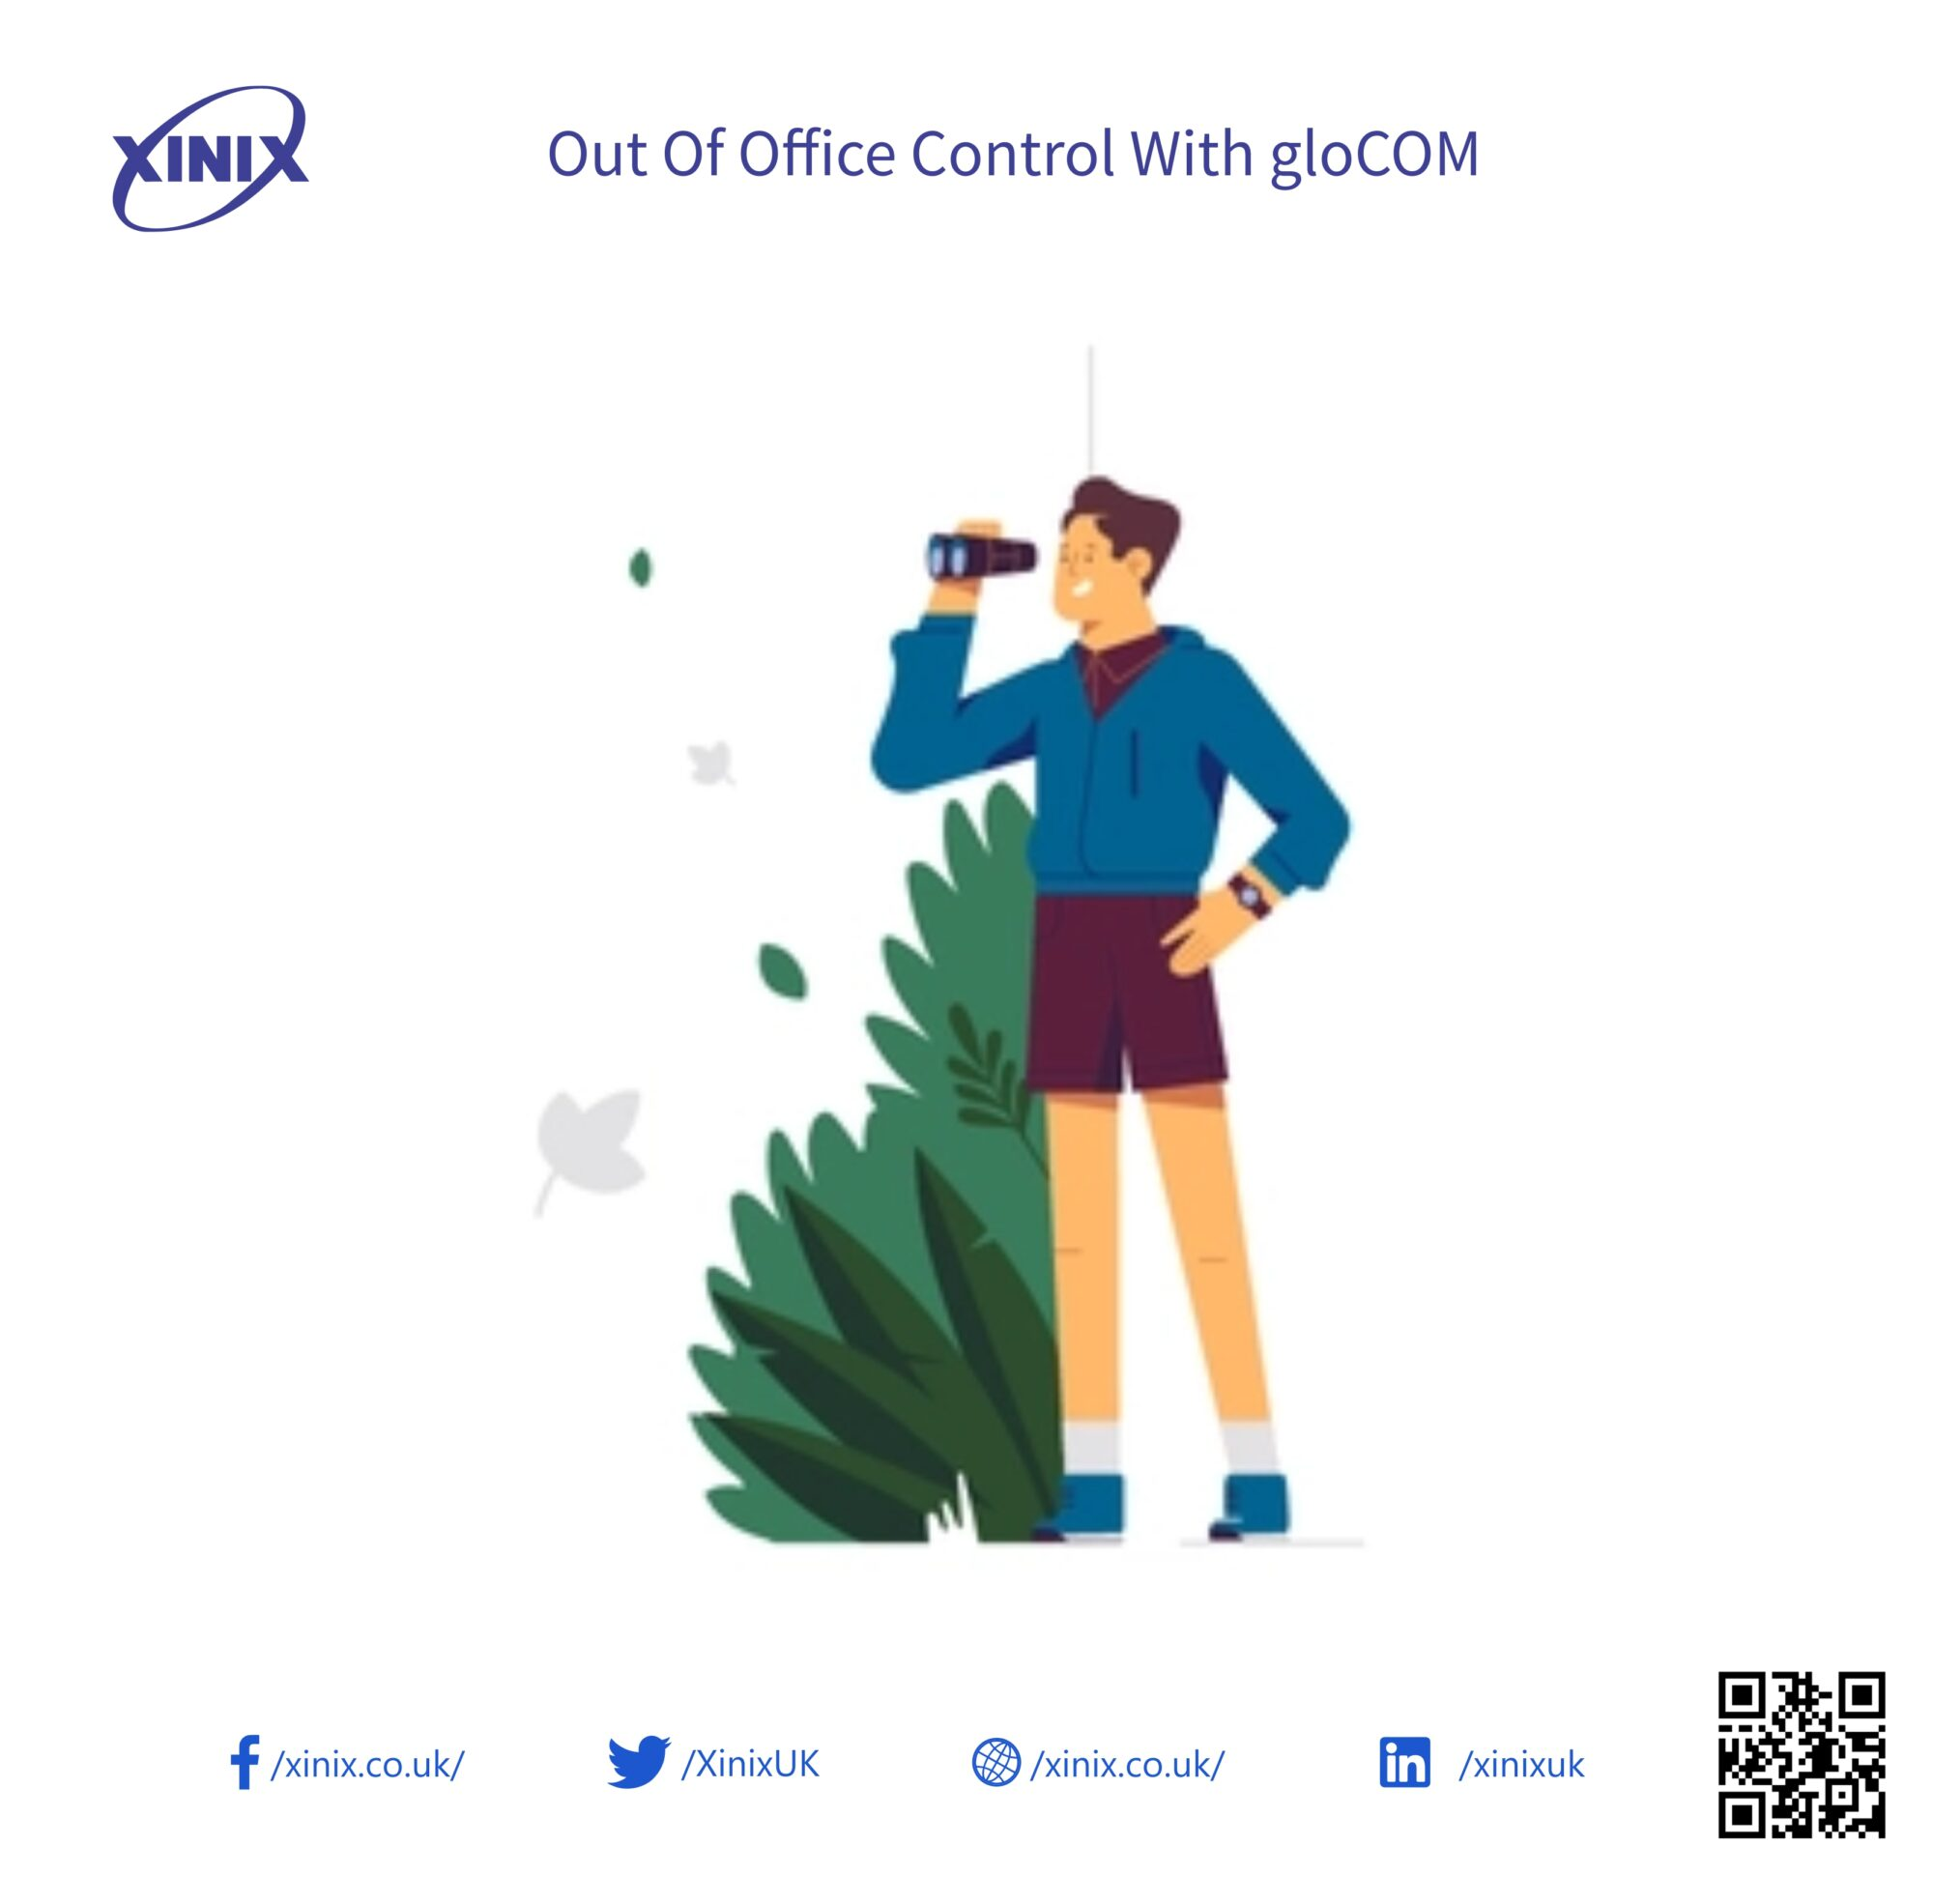 Out Of Office Control With gloCOM